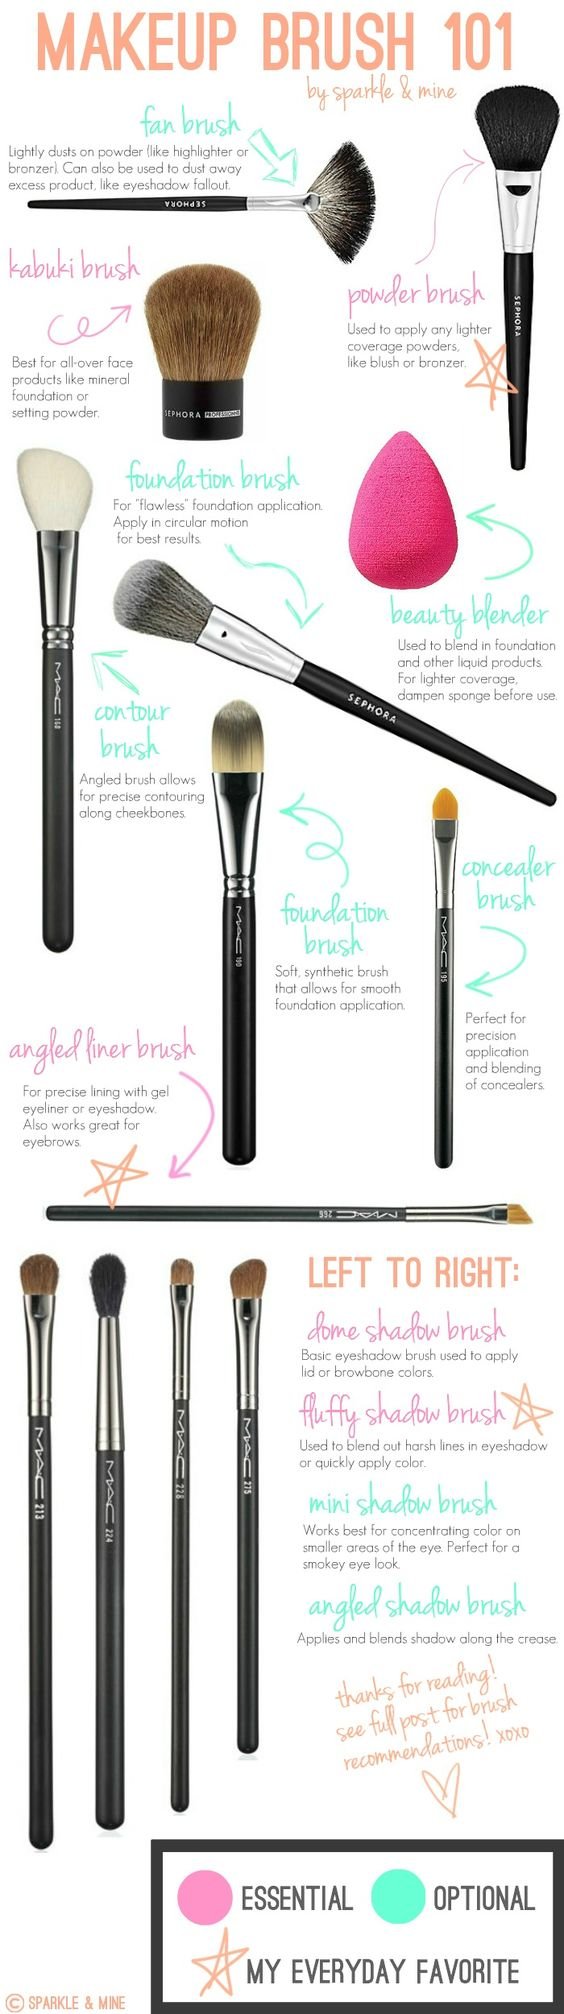 | Keywords: brushes, concealer, contour, foundation, kabuki, make-up, tools